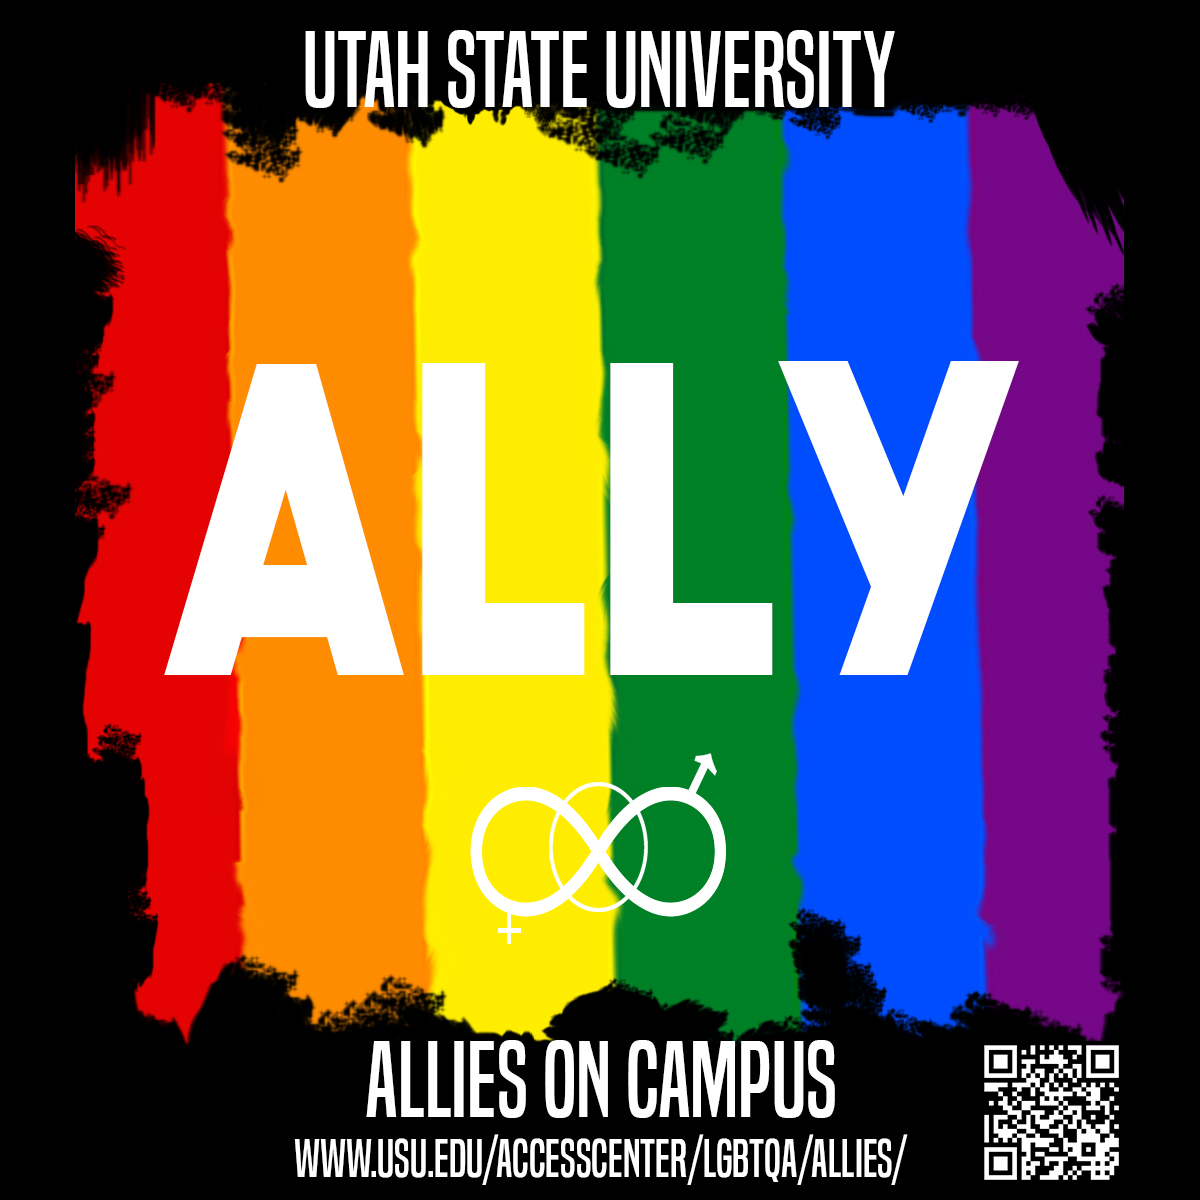 Alexandra is both an Ally and an Allies Trainer on the USU campus.